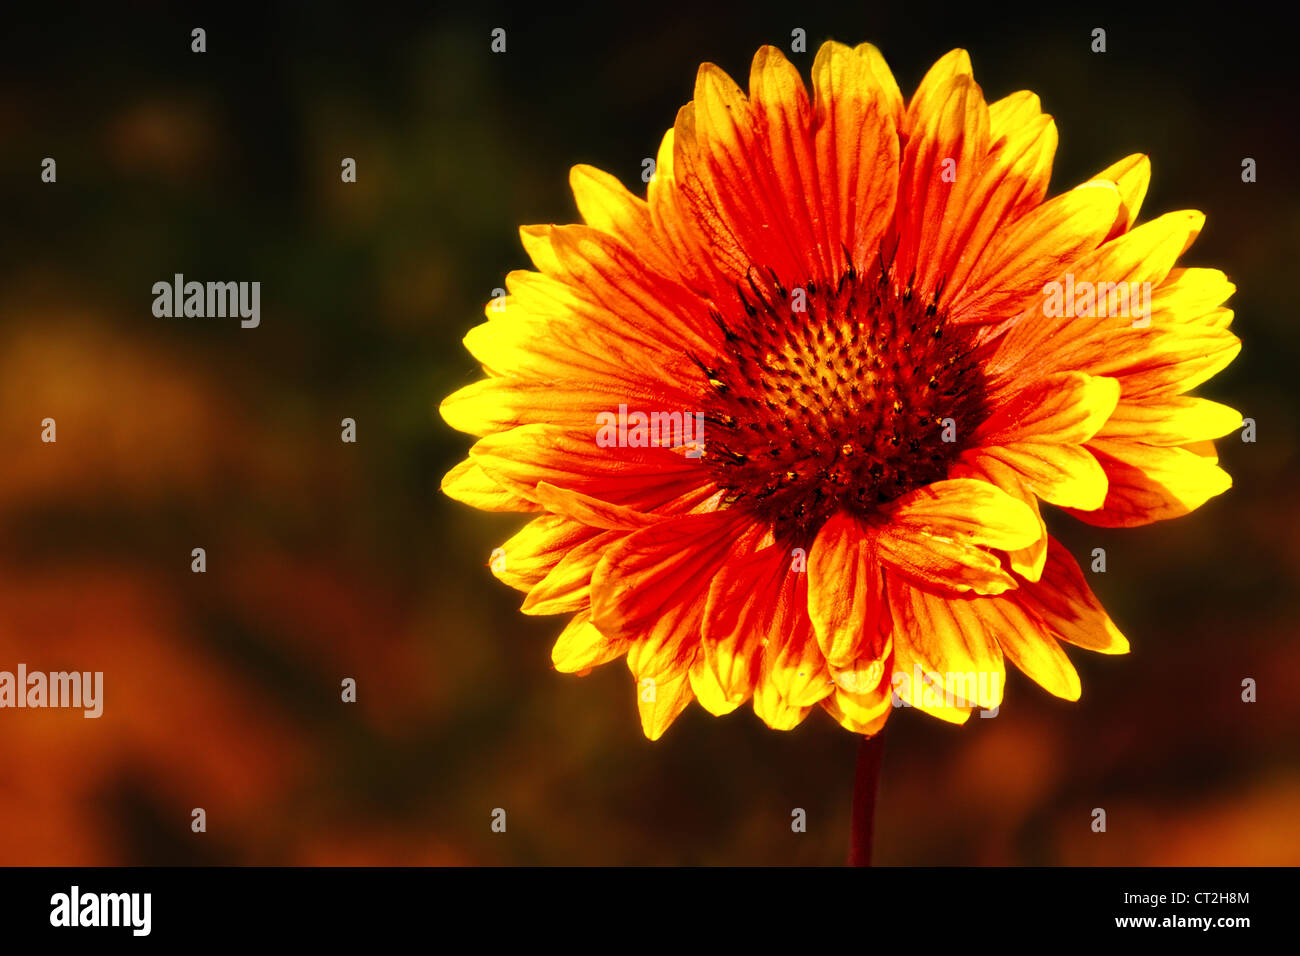 Photograph of a Gaillardia aristata (blanketflower or firewheel), that was photographed in Vista, California. - Stock Image